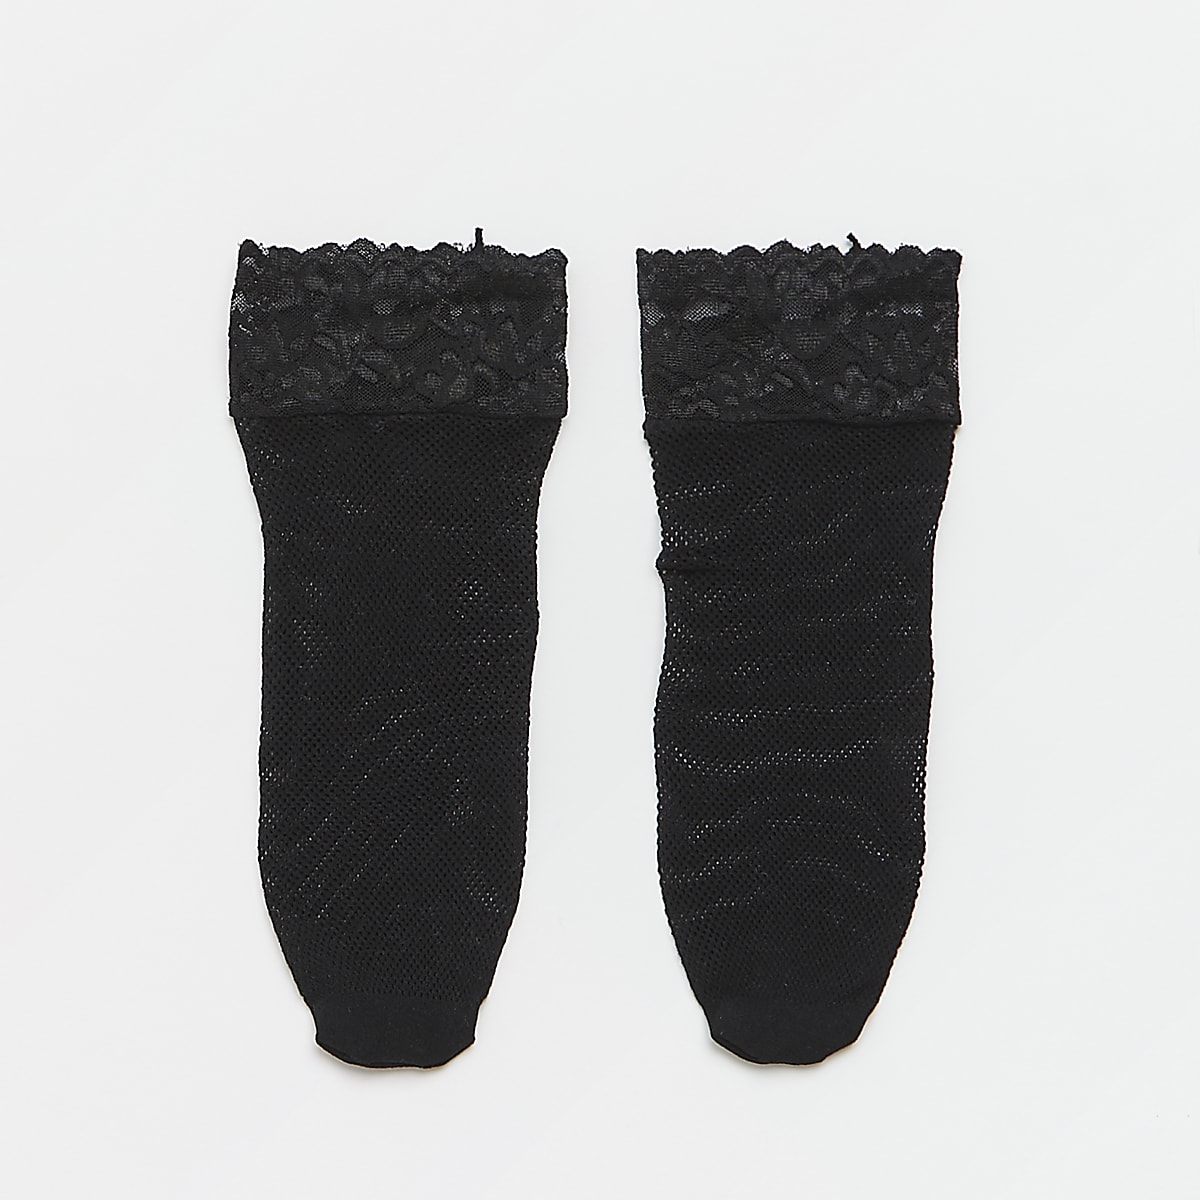 Black lace fishnet sock